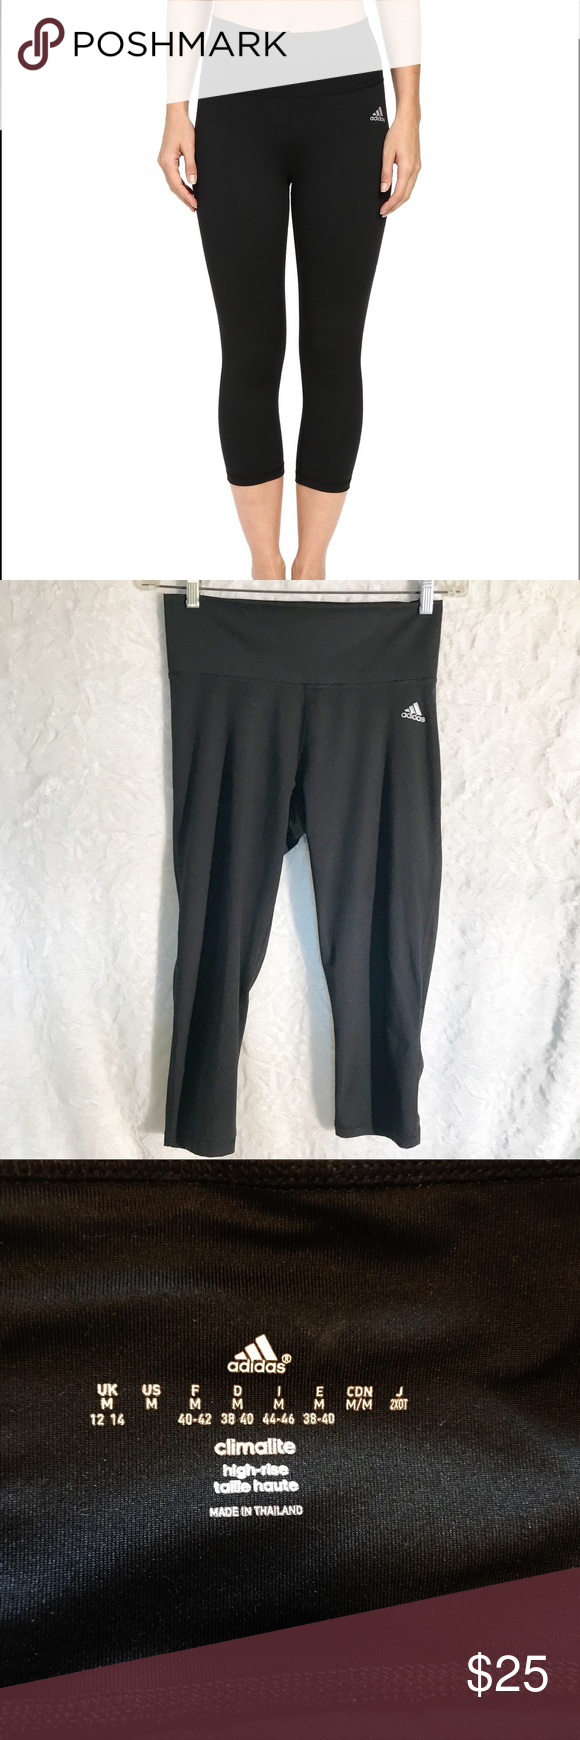 4d3ac137e4a224 Adidas Women's Performer High-Rise 3/4 Tights EUC, fitted design, wide  elastic band, climalite fabric helps pull moisture away from the skin.